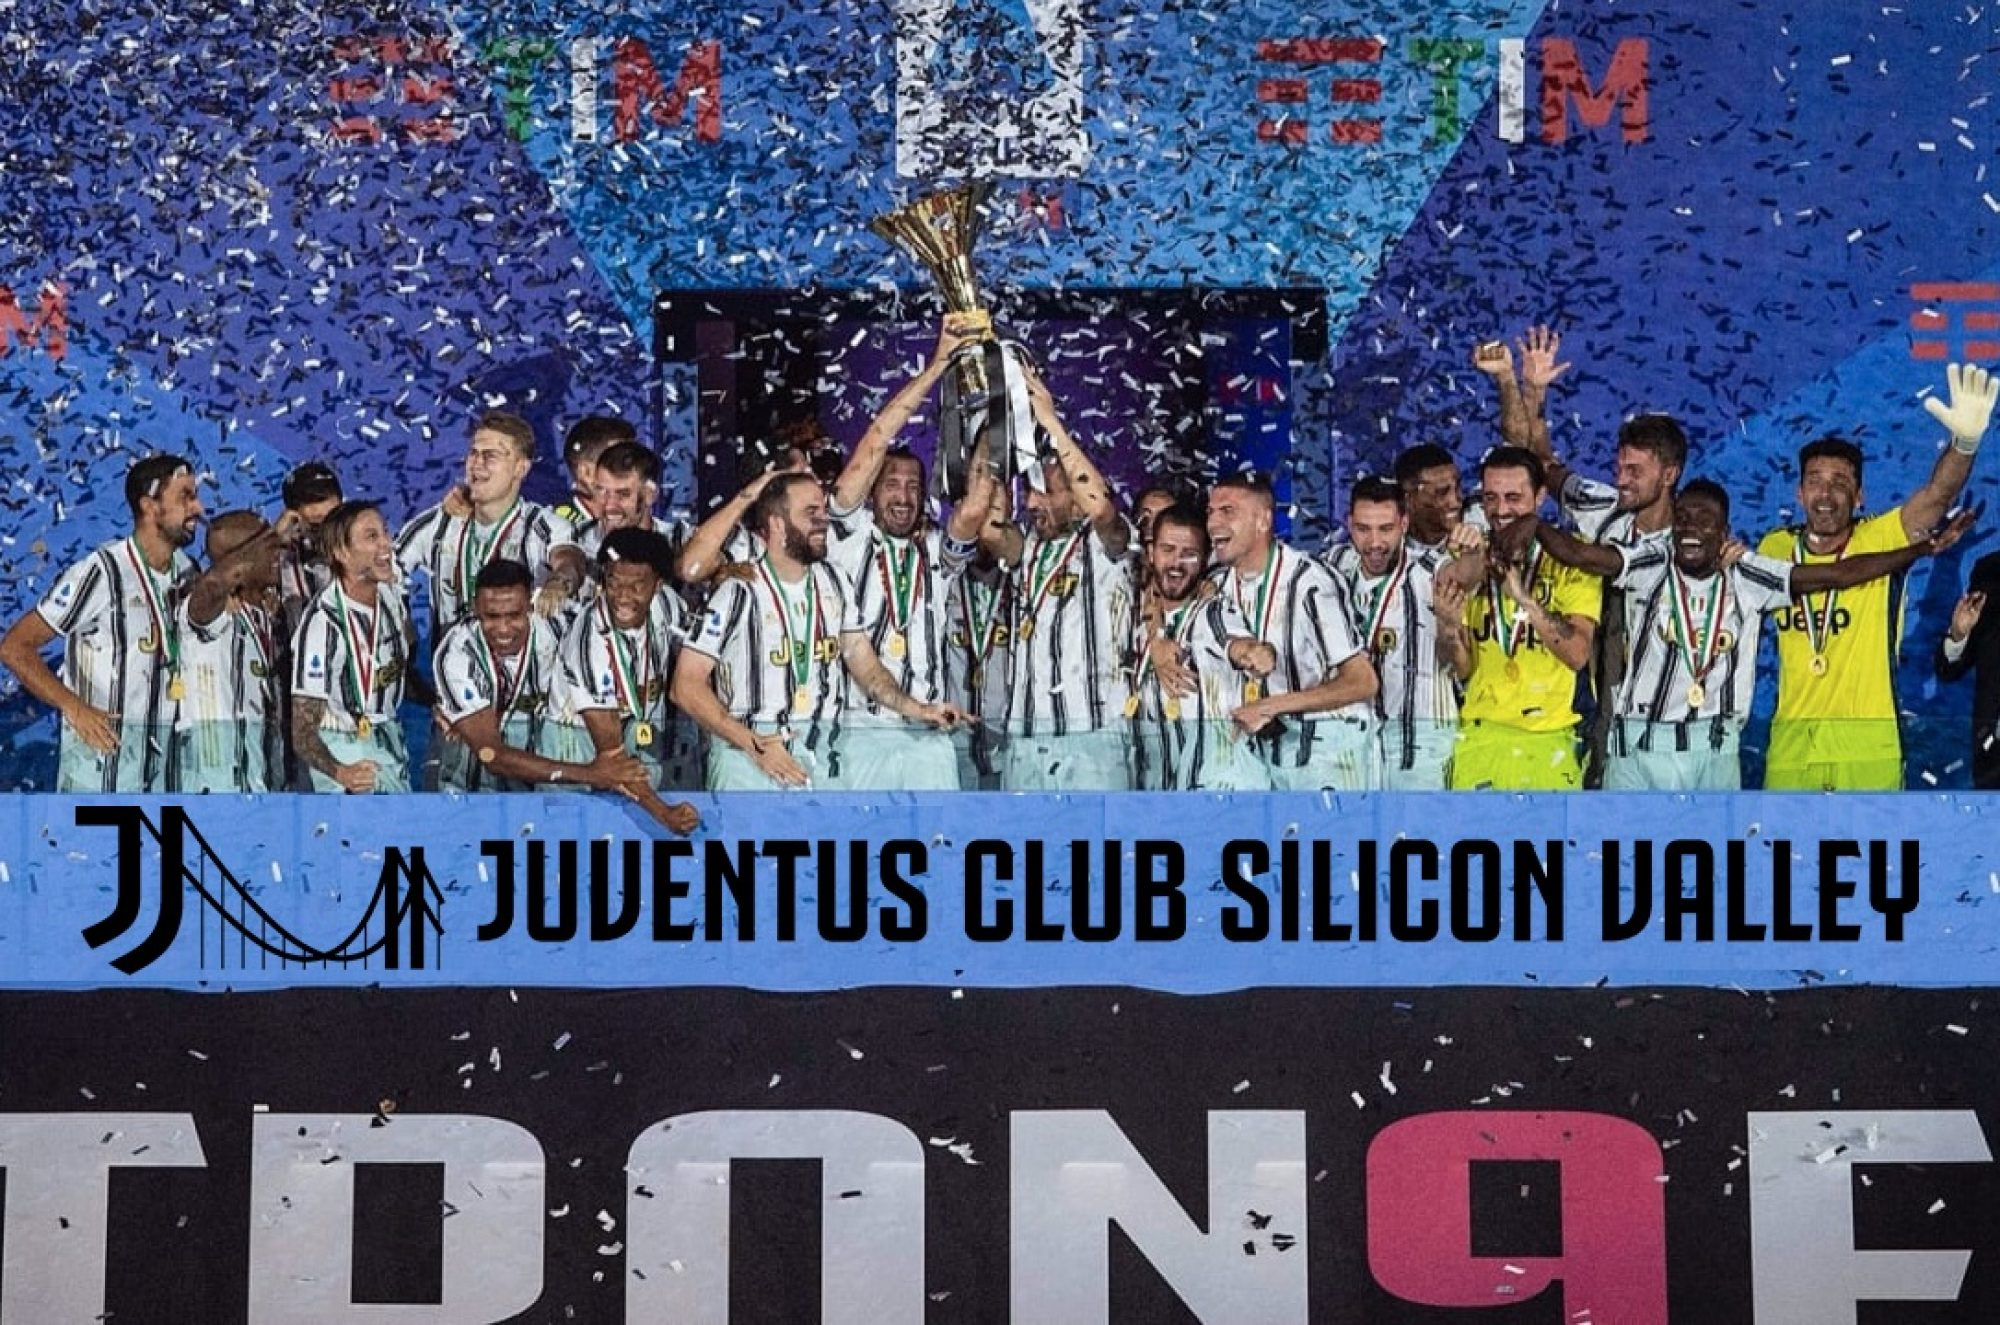 Juventus Club Silicon Valley